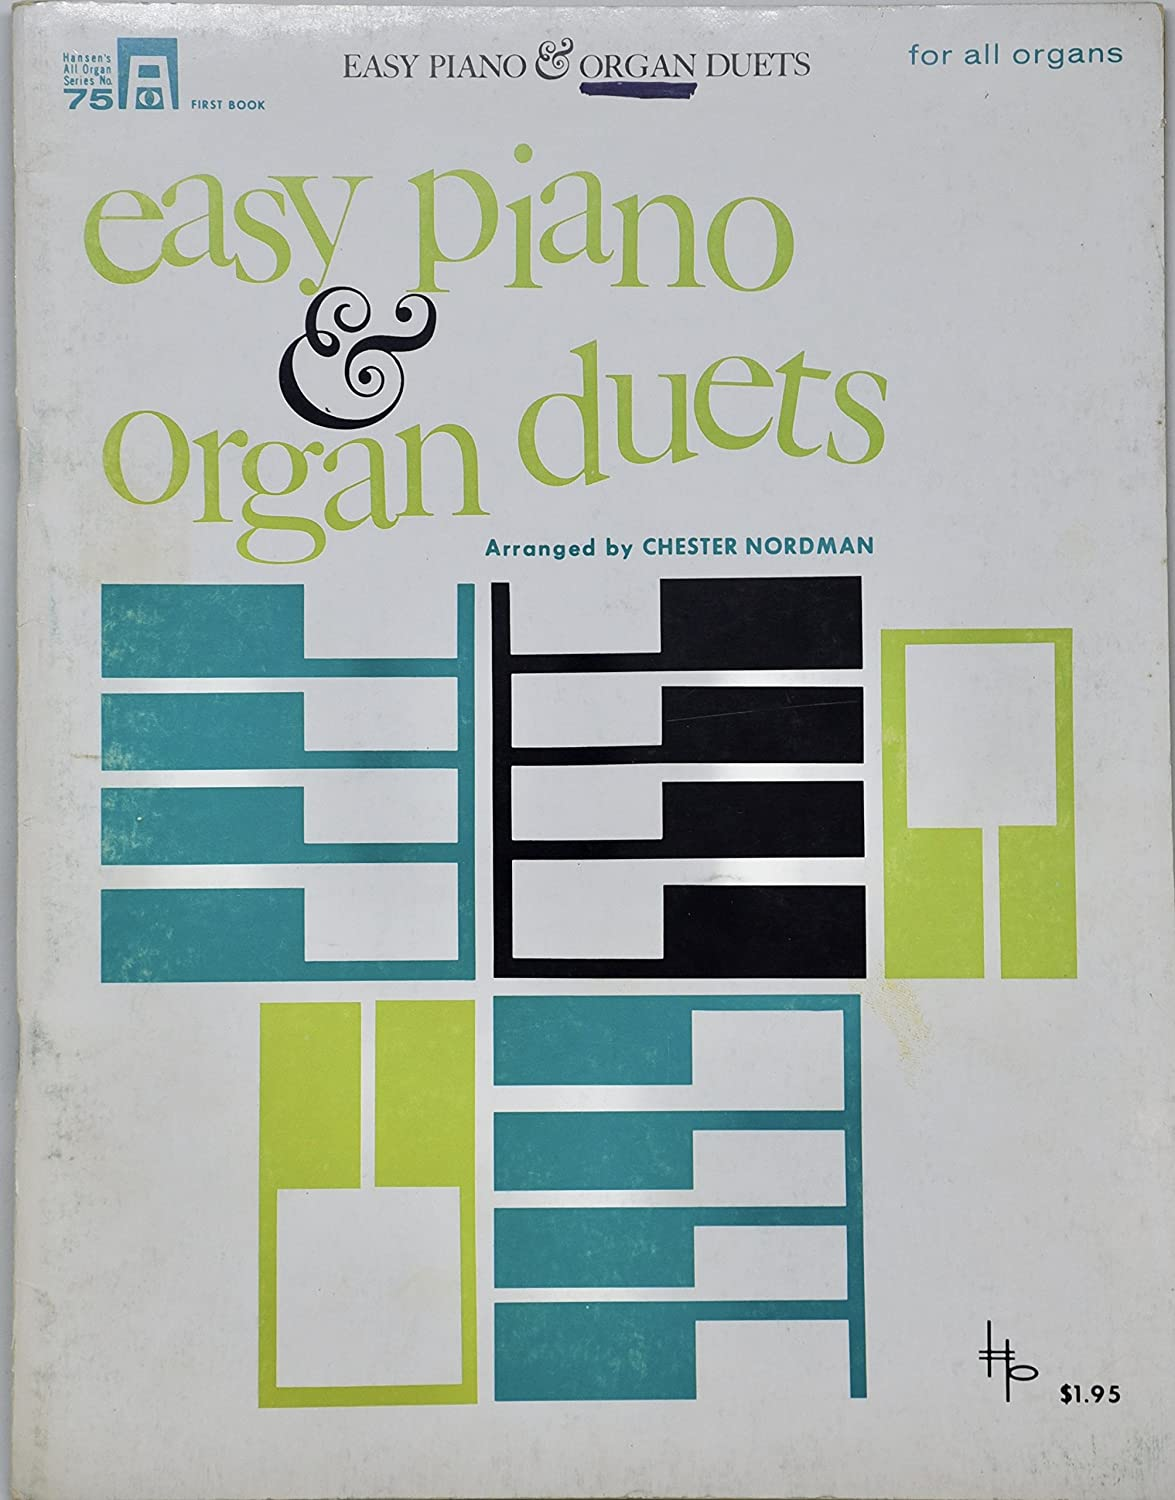 B06X1DJDTR 1964 - Easy Piano & Organ Duets - Hansen All Organ Series No. 75 91Ub152MdpL